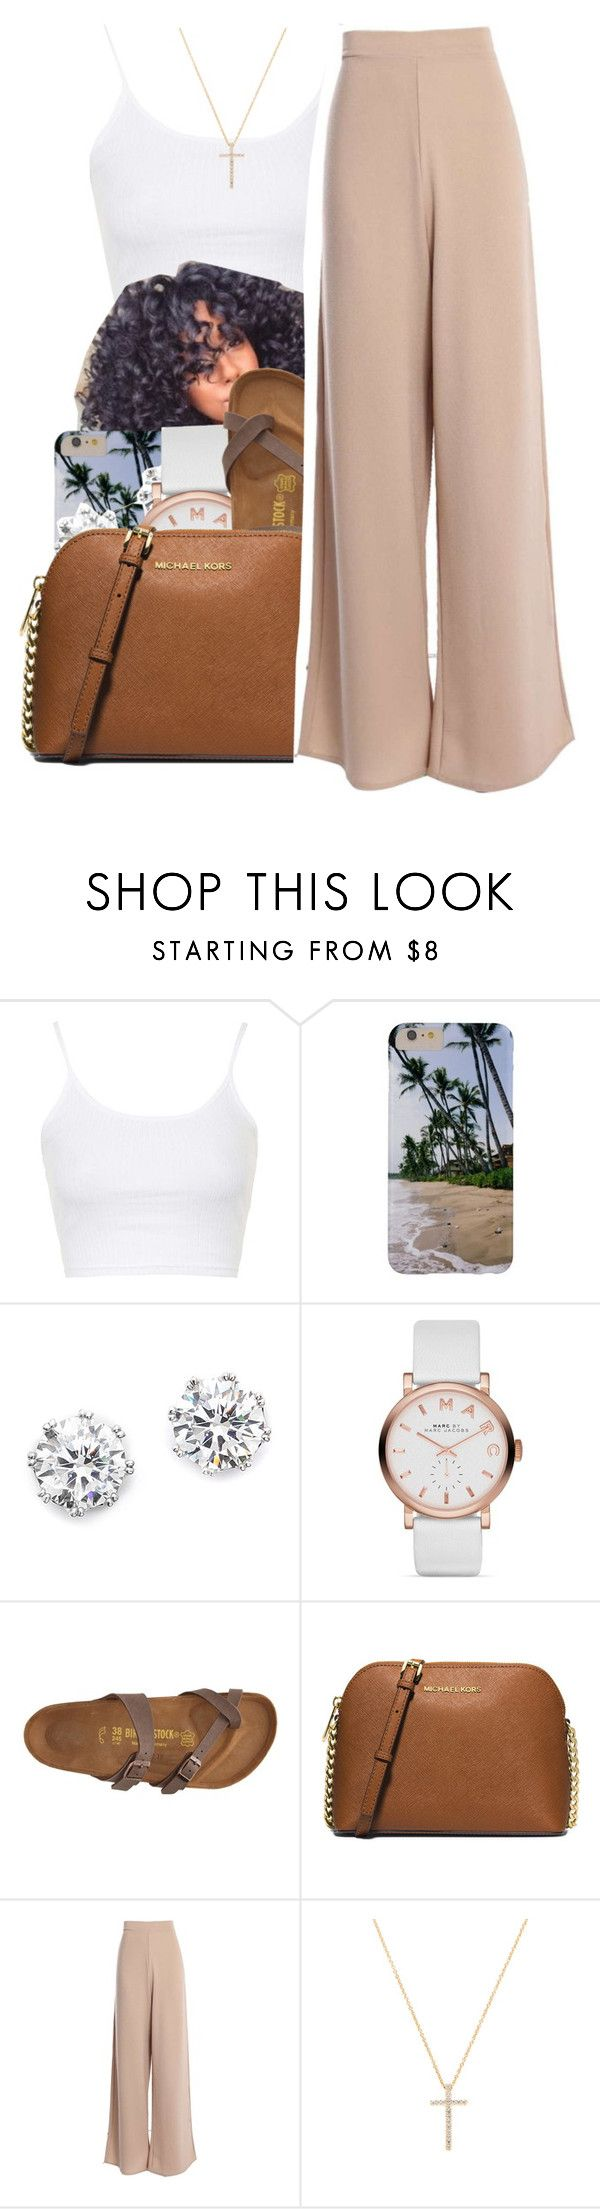 """7/17/16"" by lookatimani ❤ liked on Polyvore featuring Topshop, Kenneth Jay Lane, Marc Jacobs, Birkenstock, MICHAEL Michael Kors and Nephora"